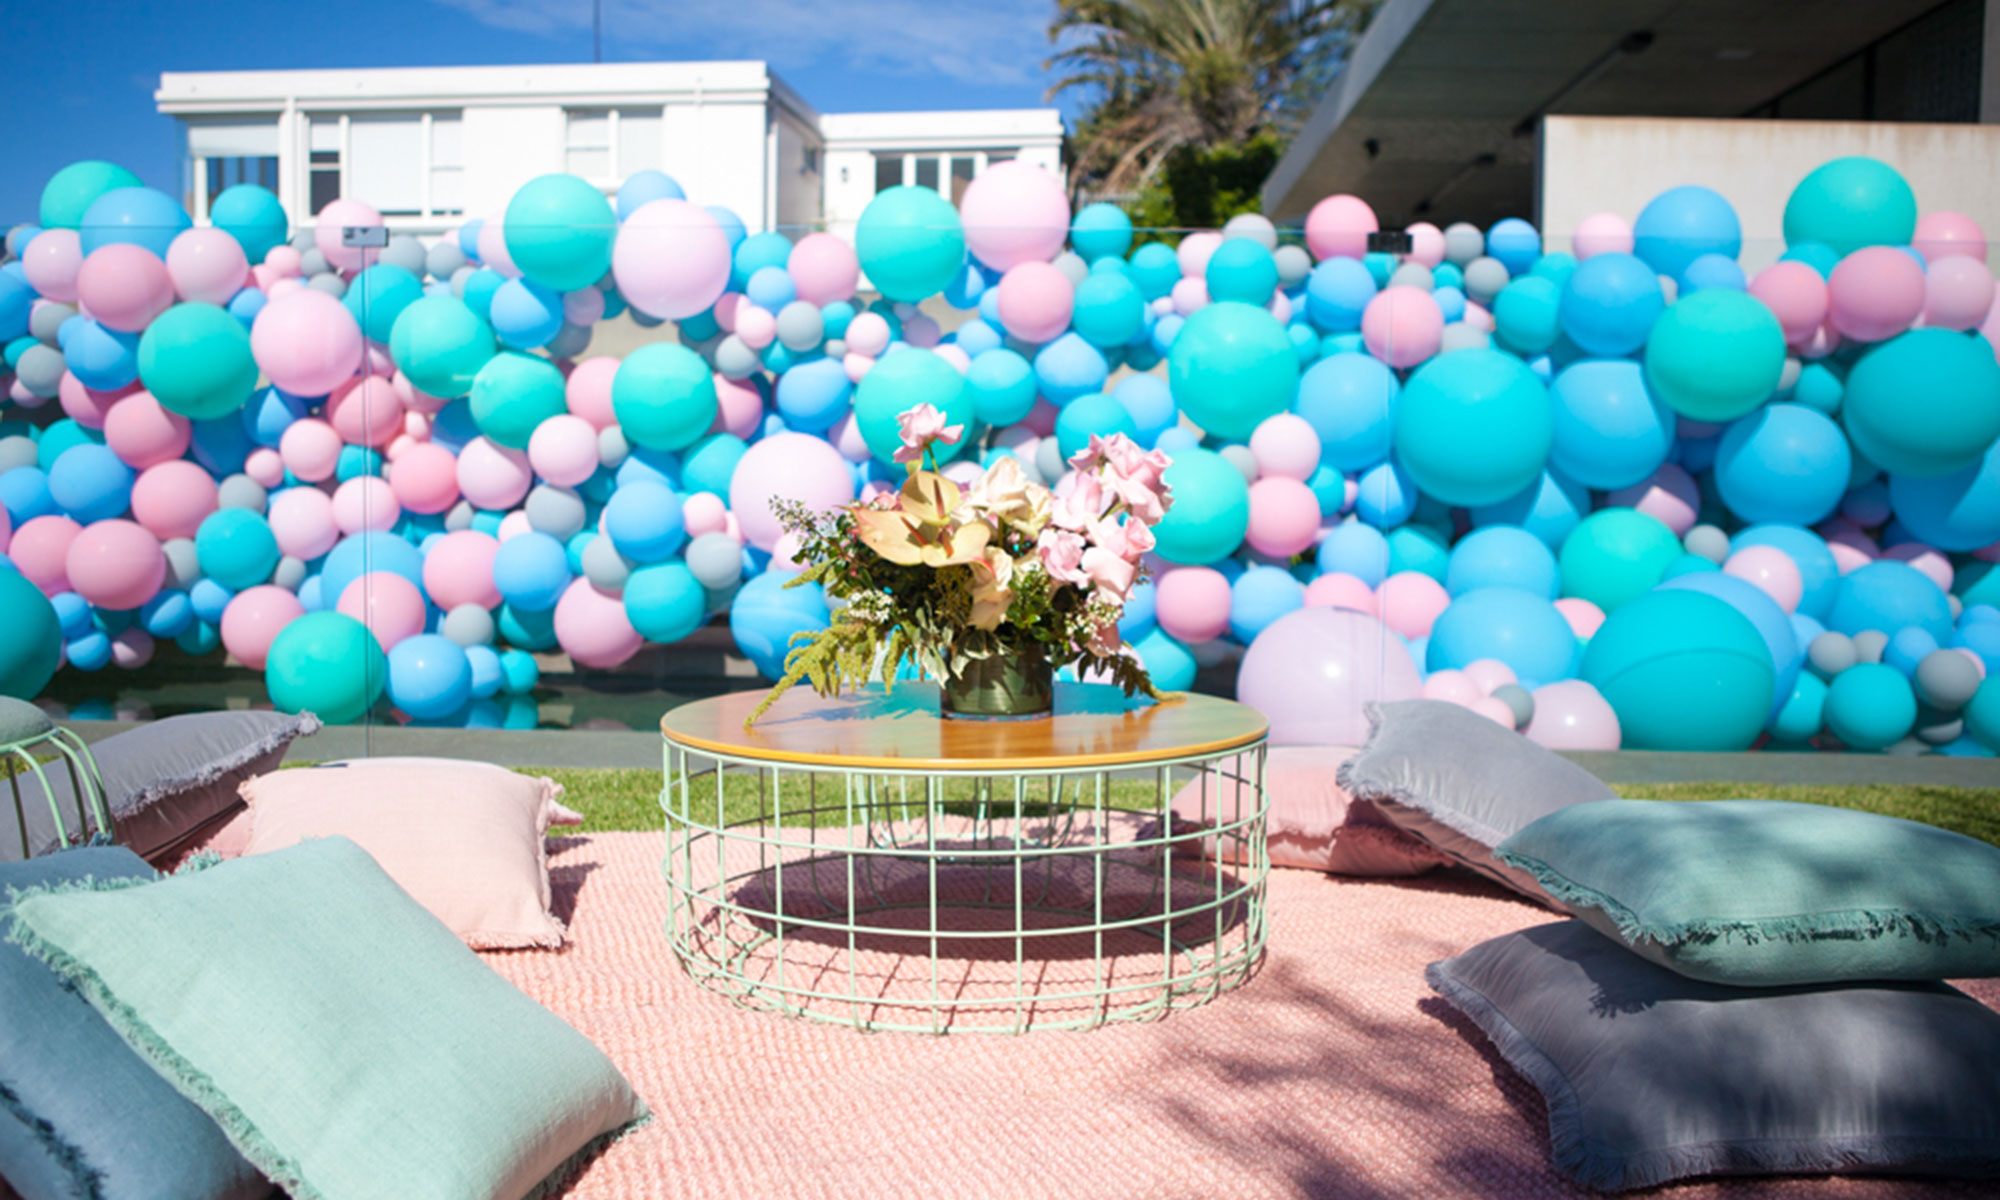 PINK MIX EVENTS AND PARTIES